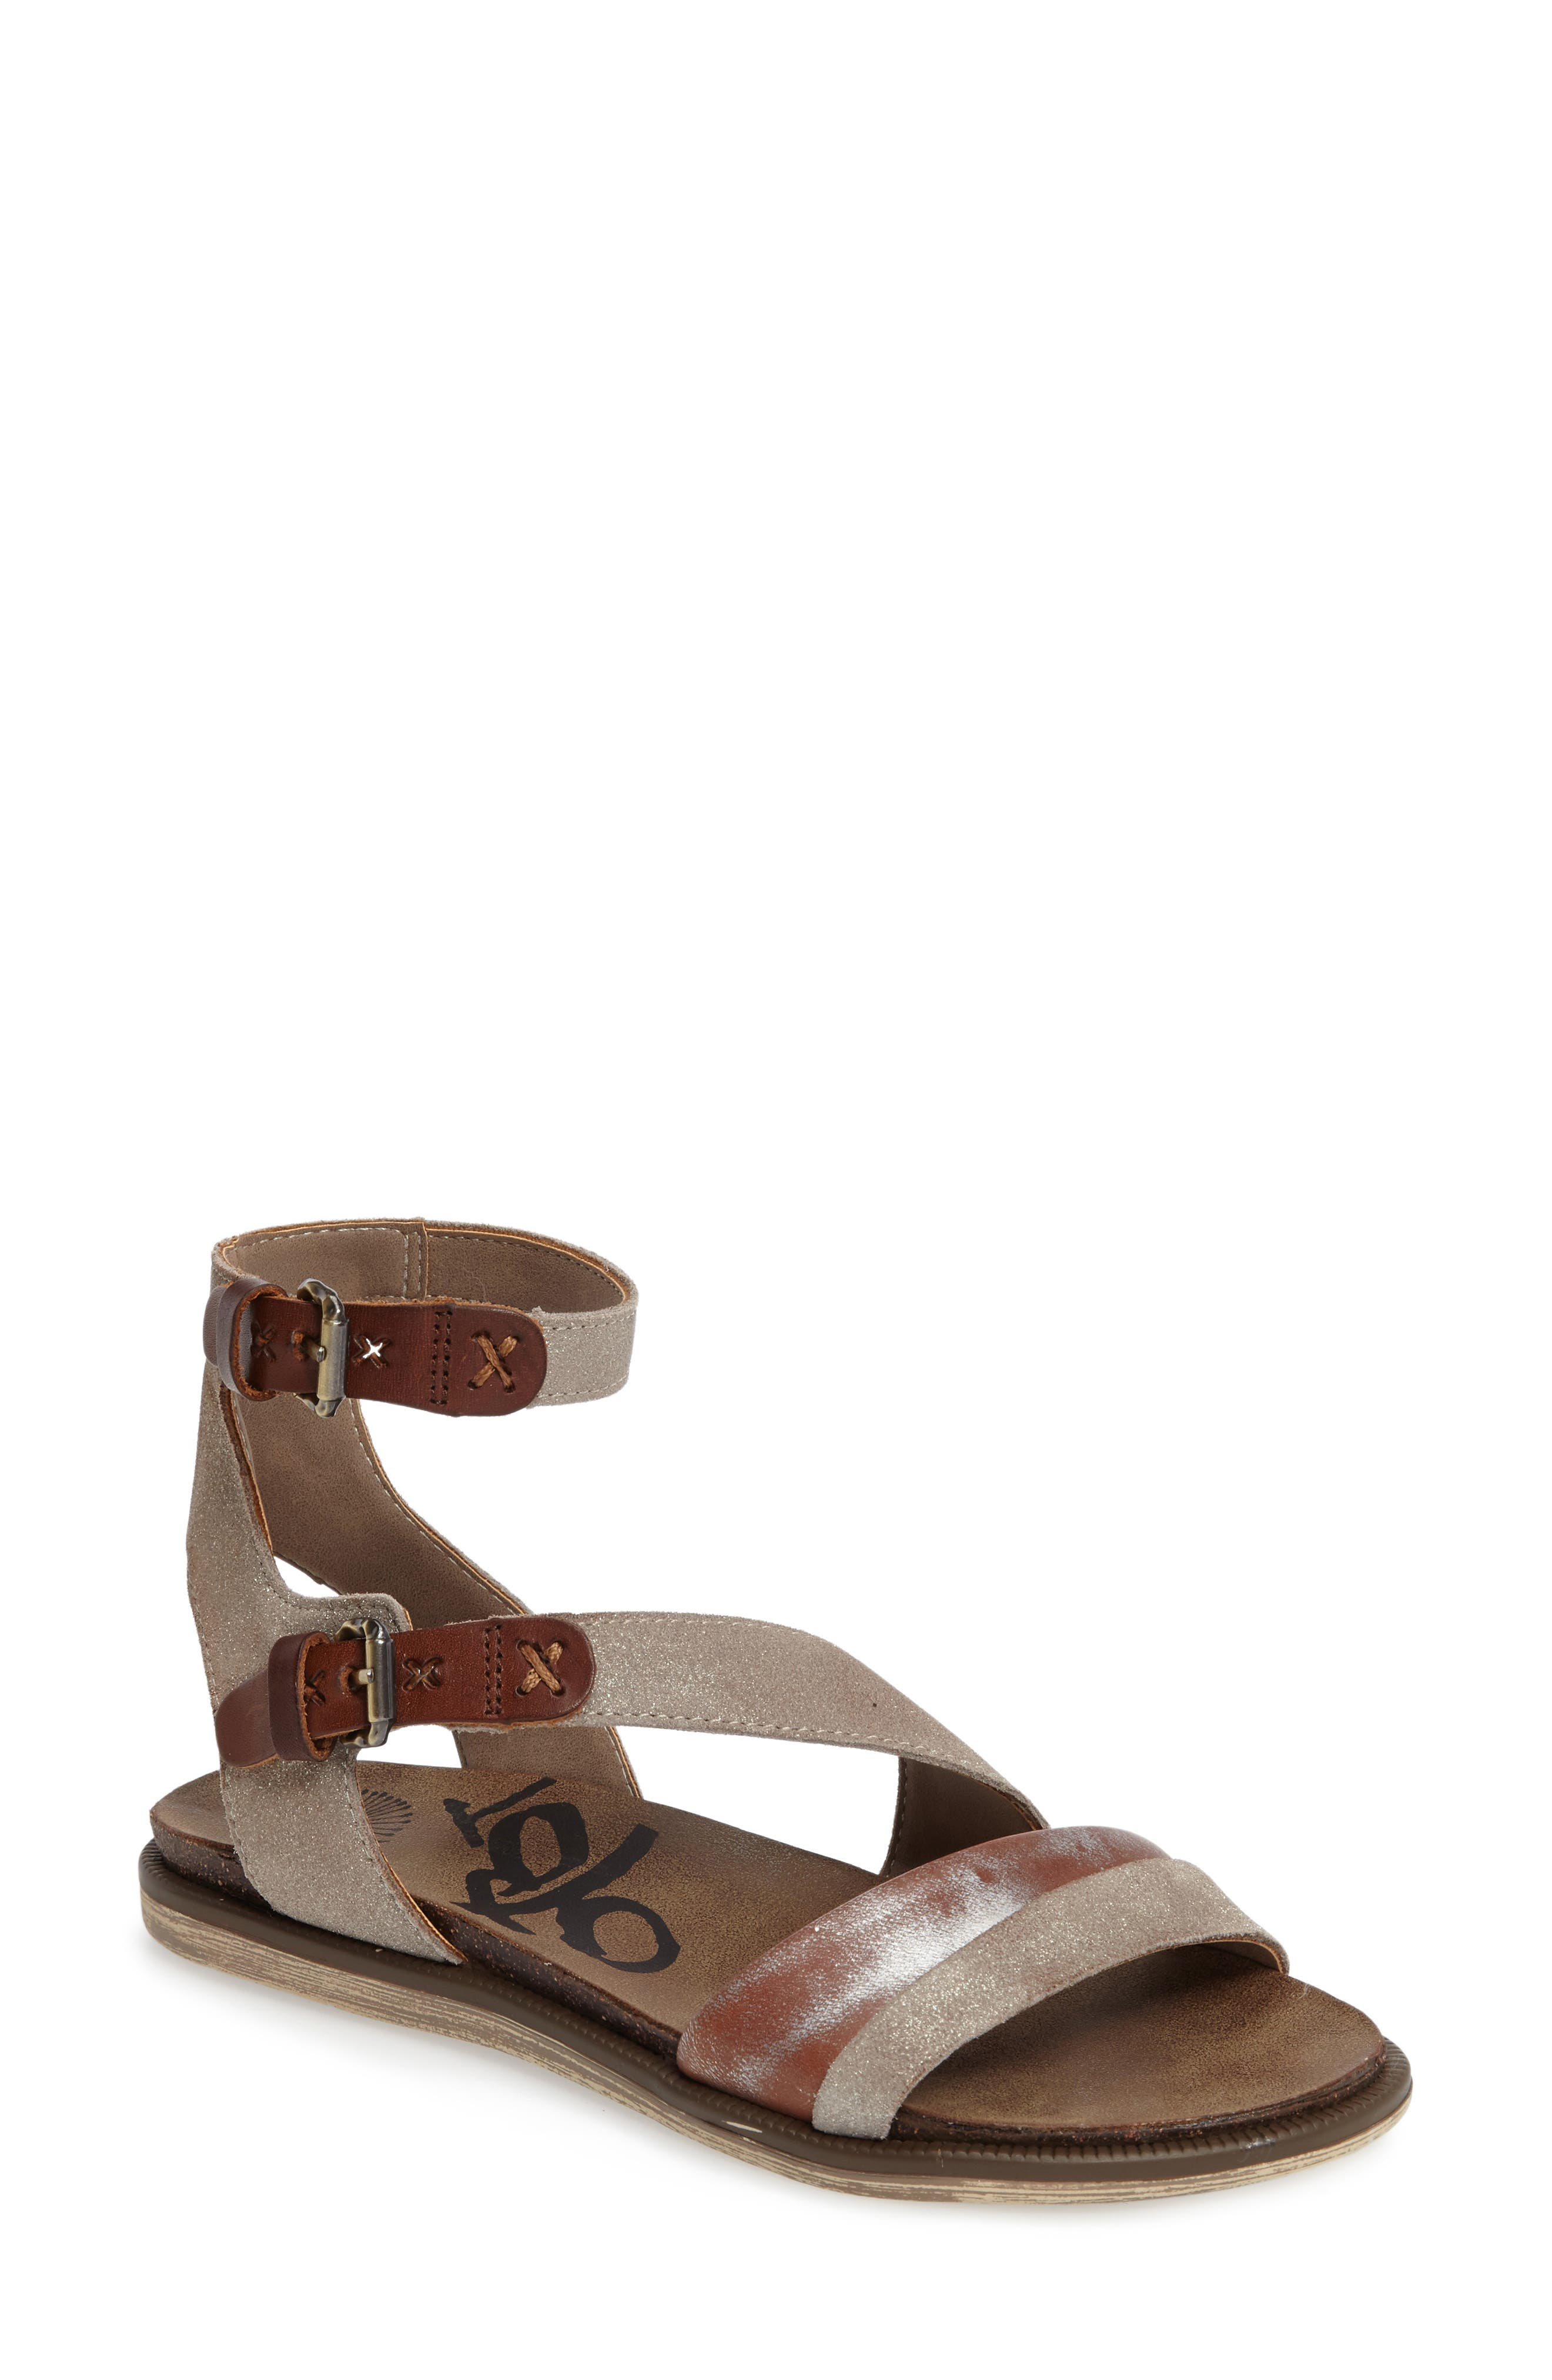 March On Flat Sandal,                             Main thumbnail 1, color,                             Grey Silver Leather